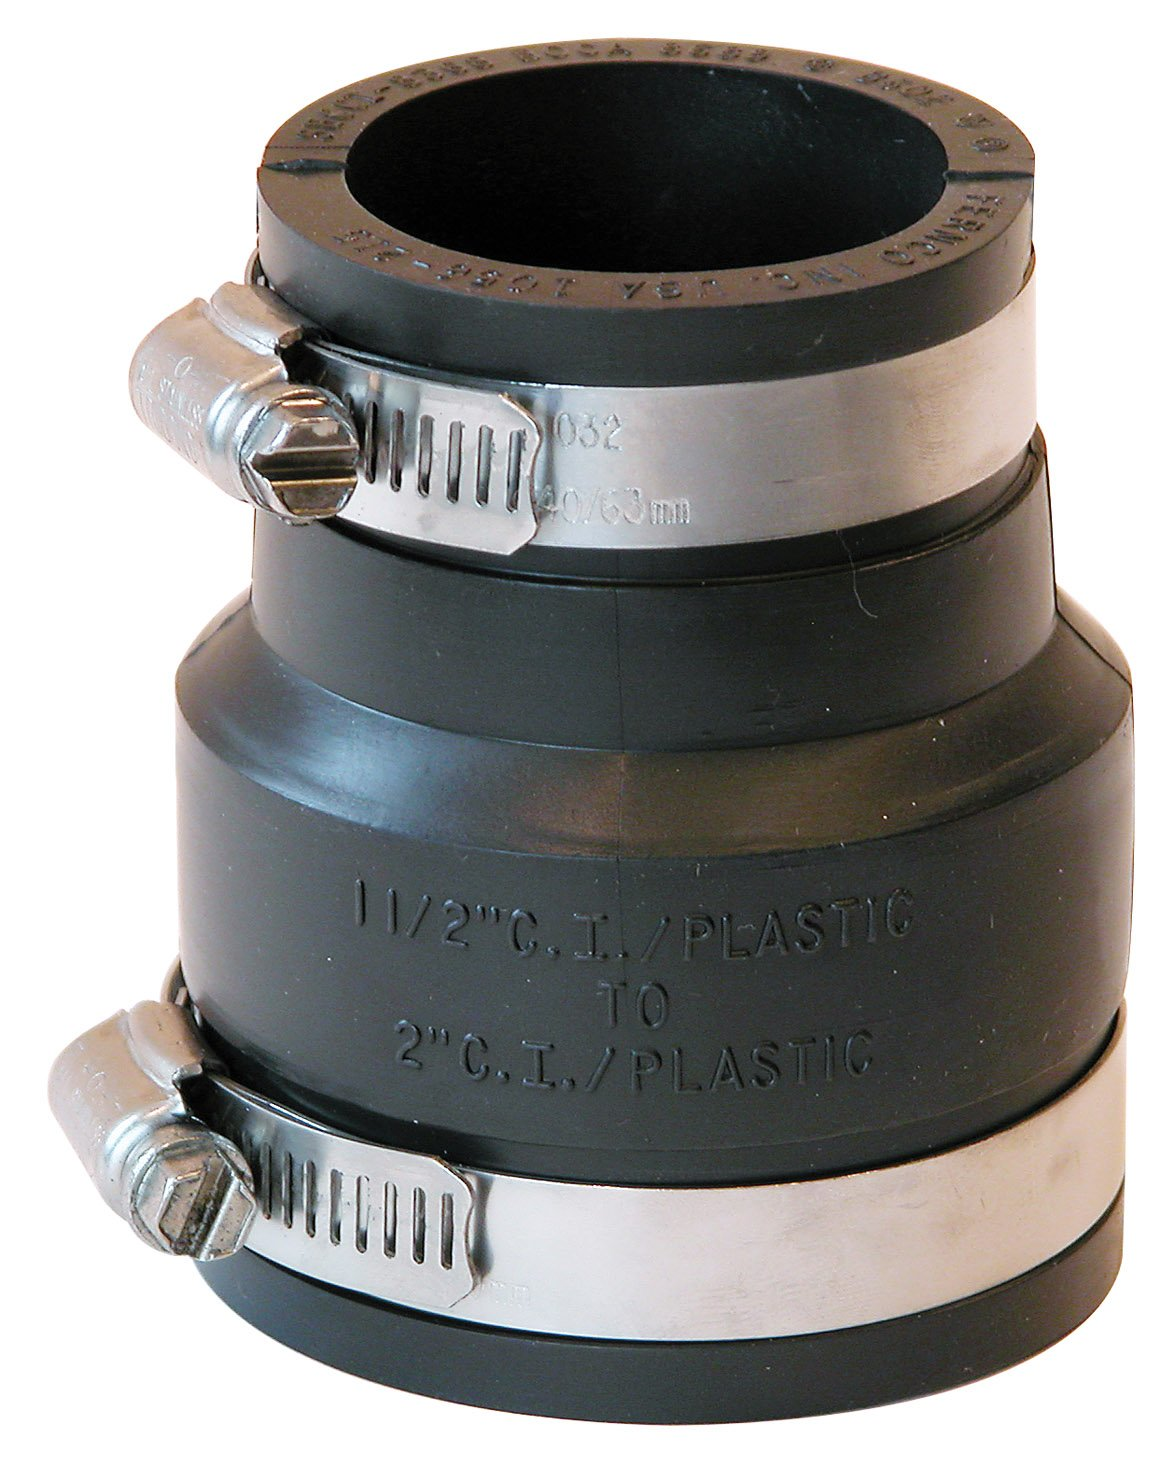 Fernco Inc. P1056-215 2-Inch by 1-1/2-Inch Stock Coupling